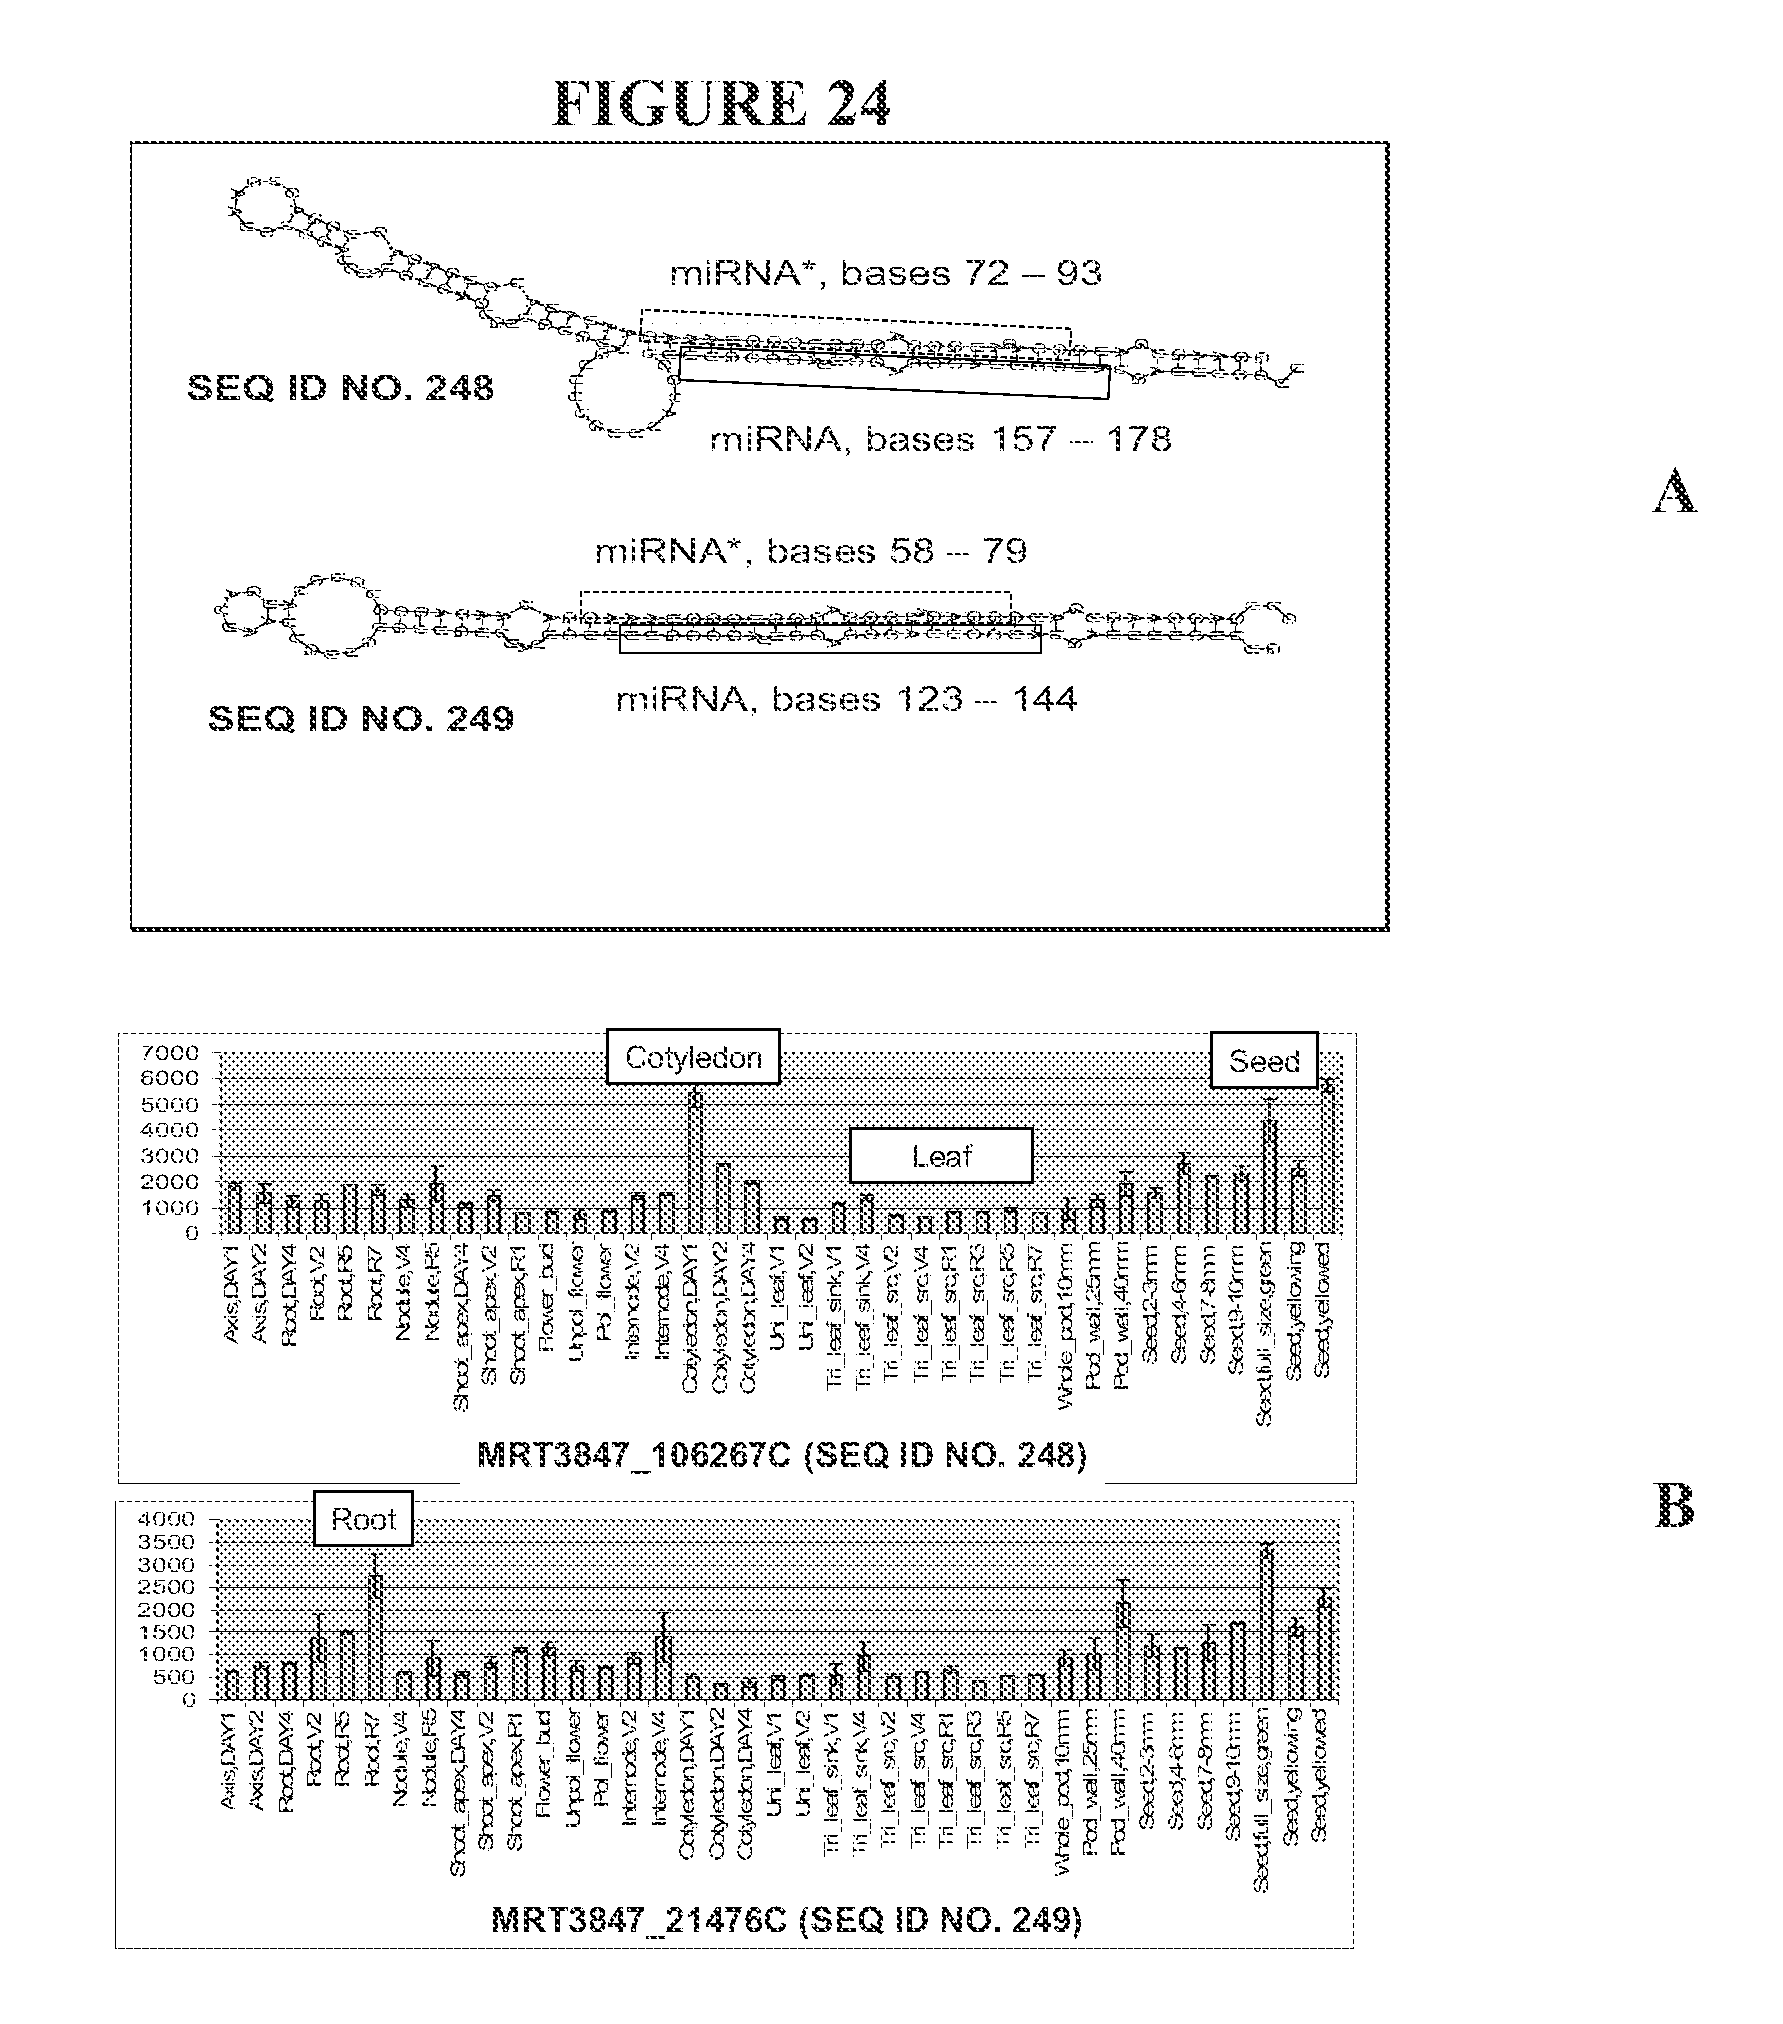 Ams Sugar Ii Set 339 us8395023b2 - recombinant dna constructs and methods for